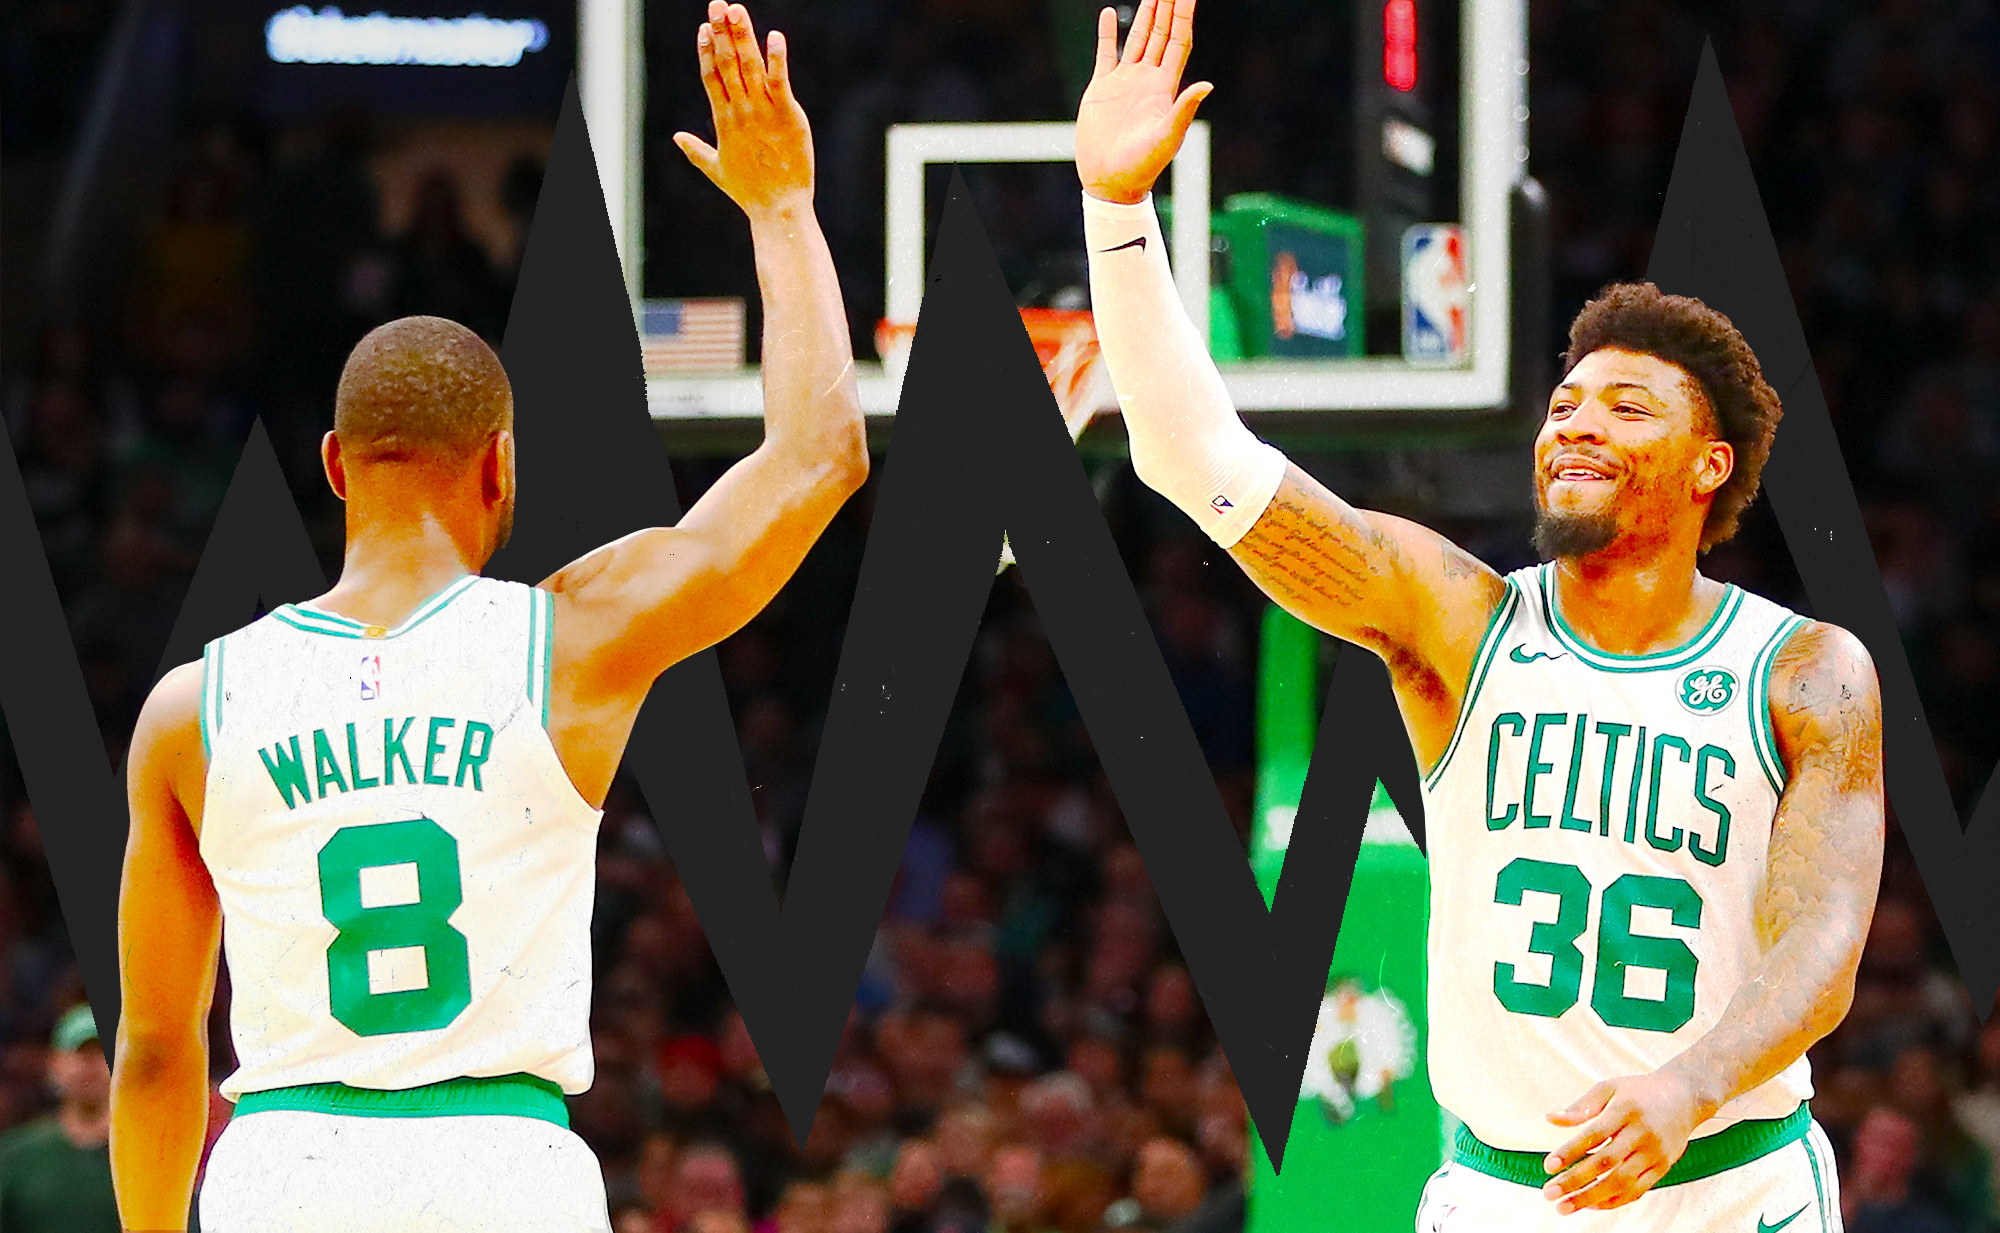 Marcus Smart and Kemba Walker exchange a high-five during the Celtics game.